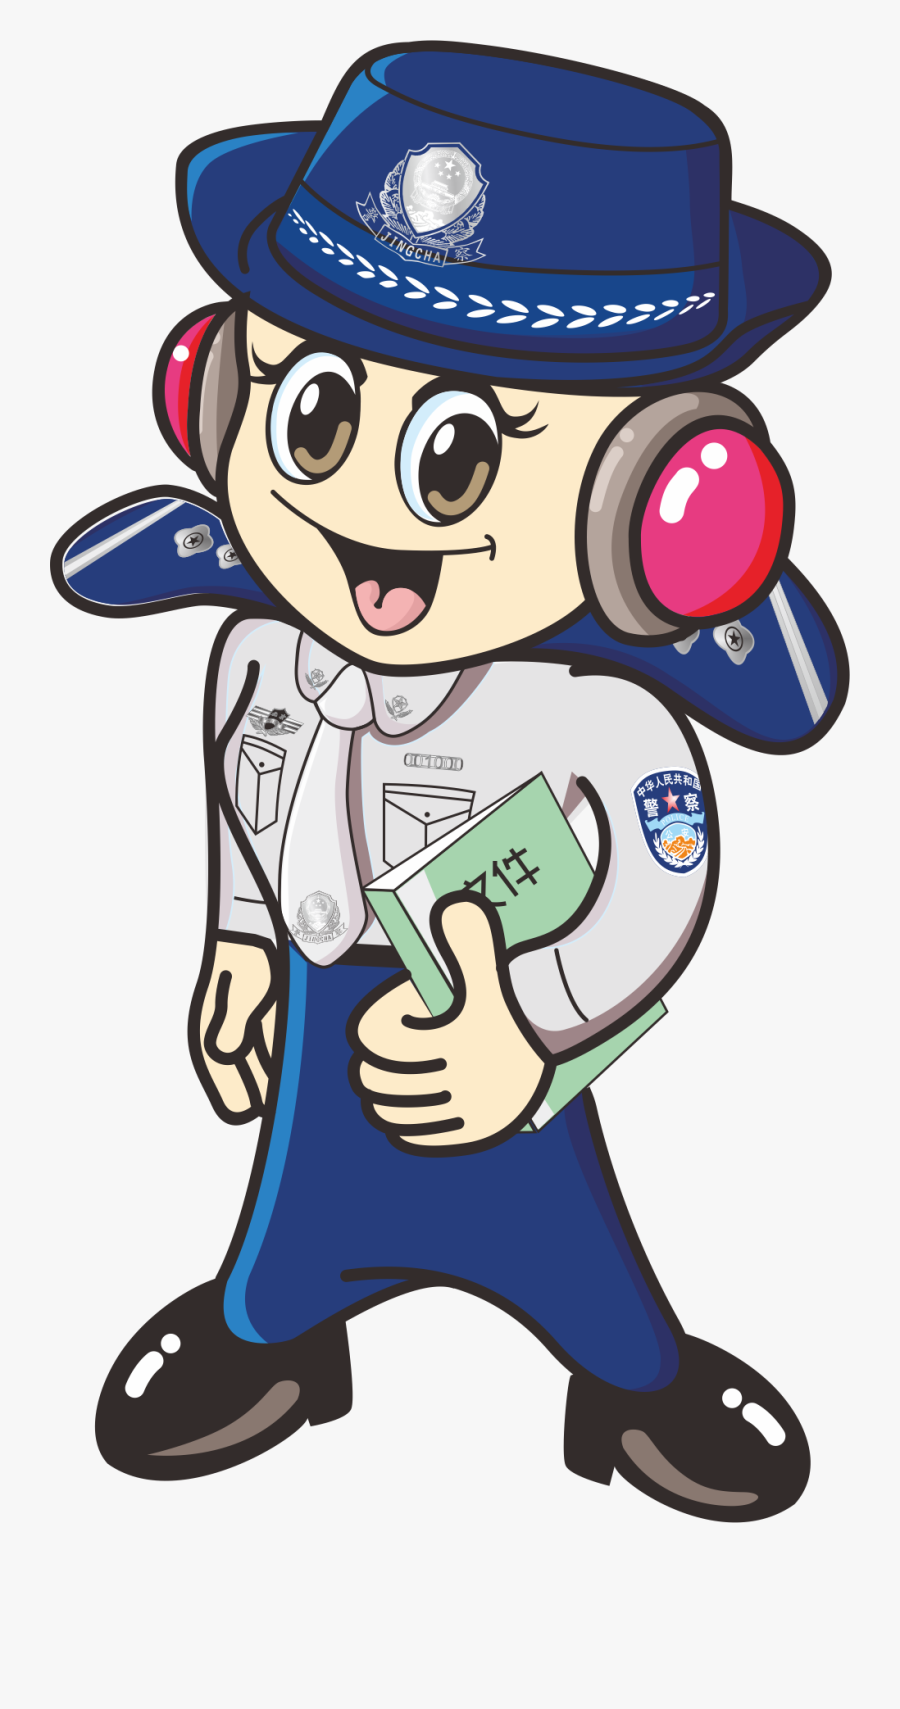 Beijing Police Officer Peoples Police Of The Peoples - 卡通 警察, Transparent Clipart